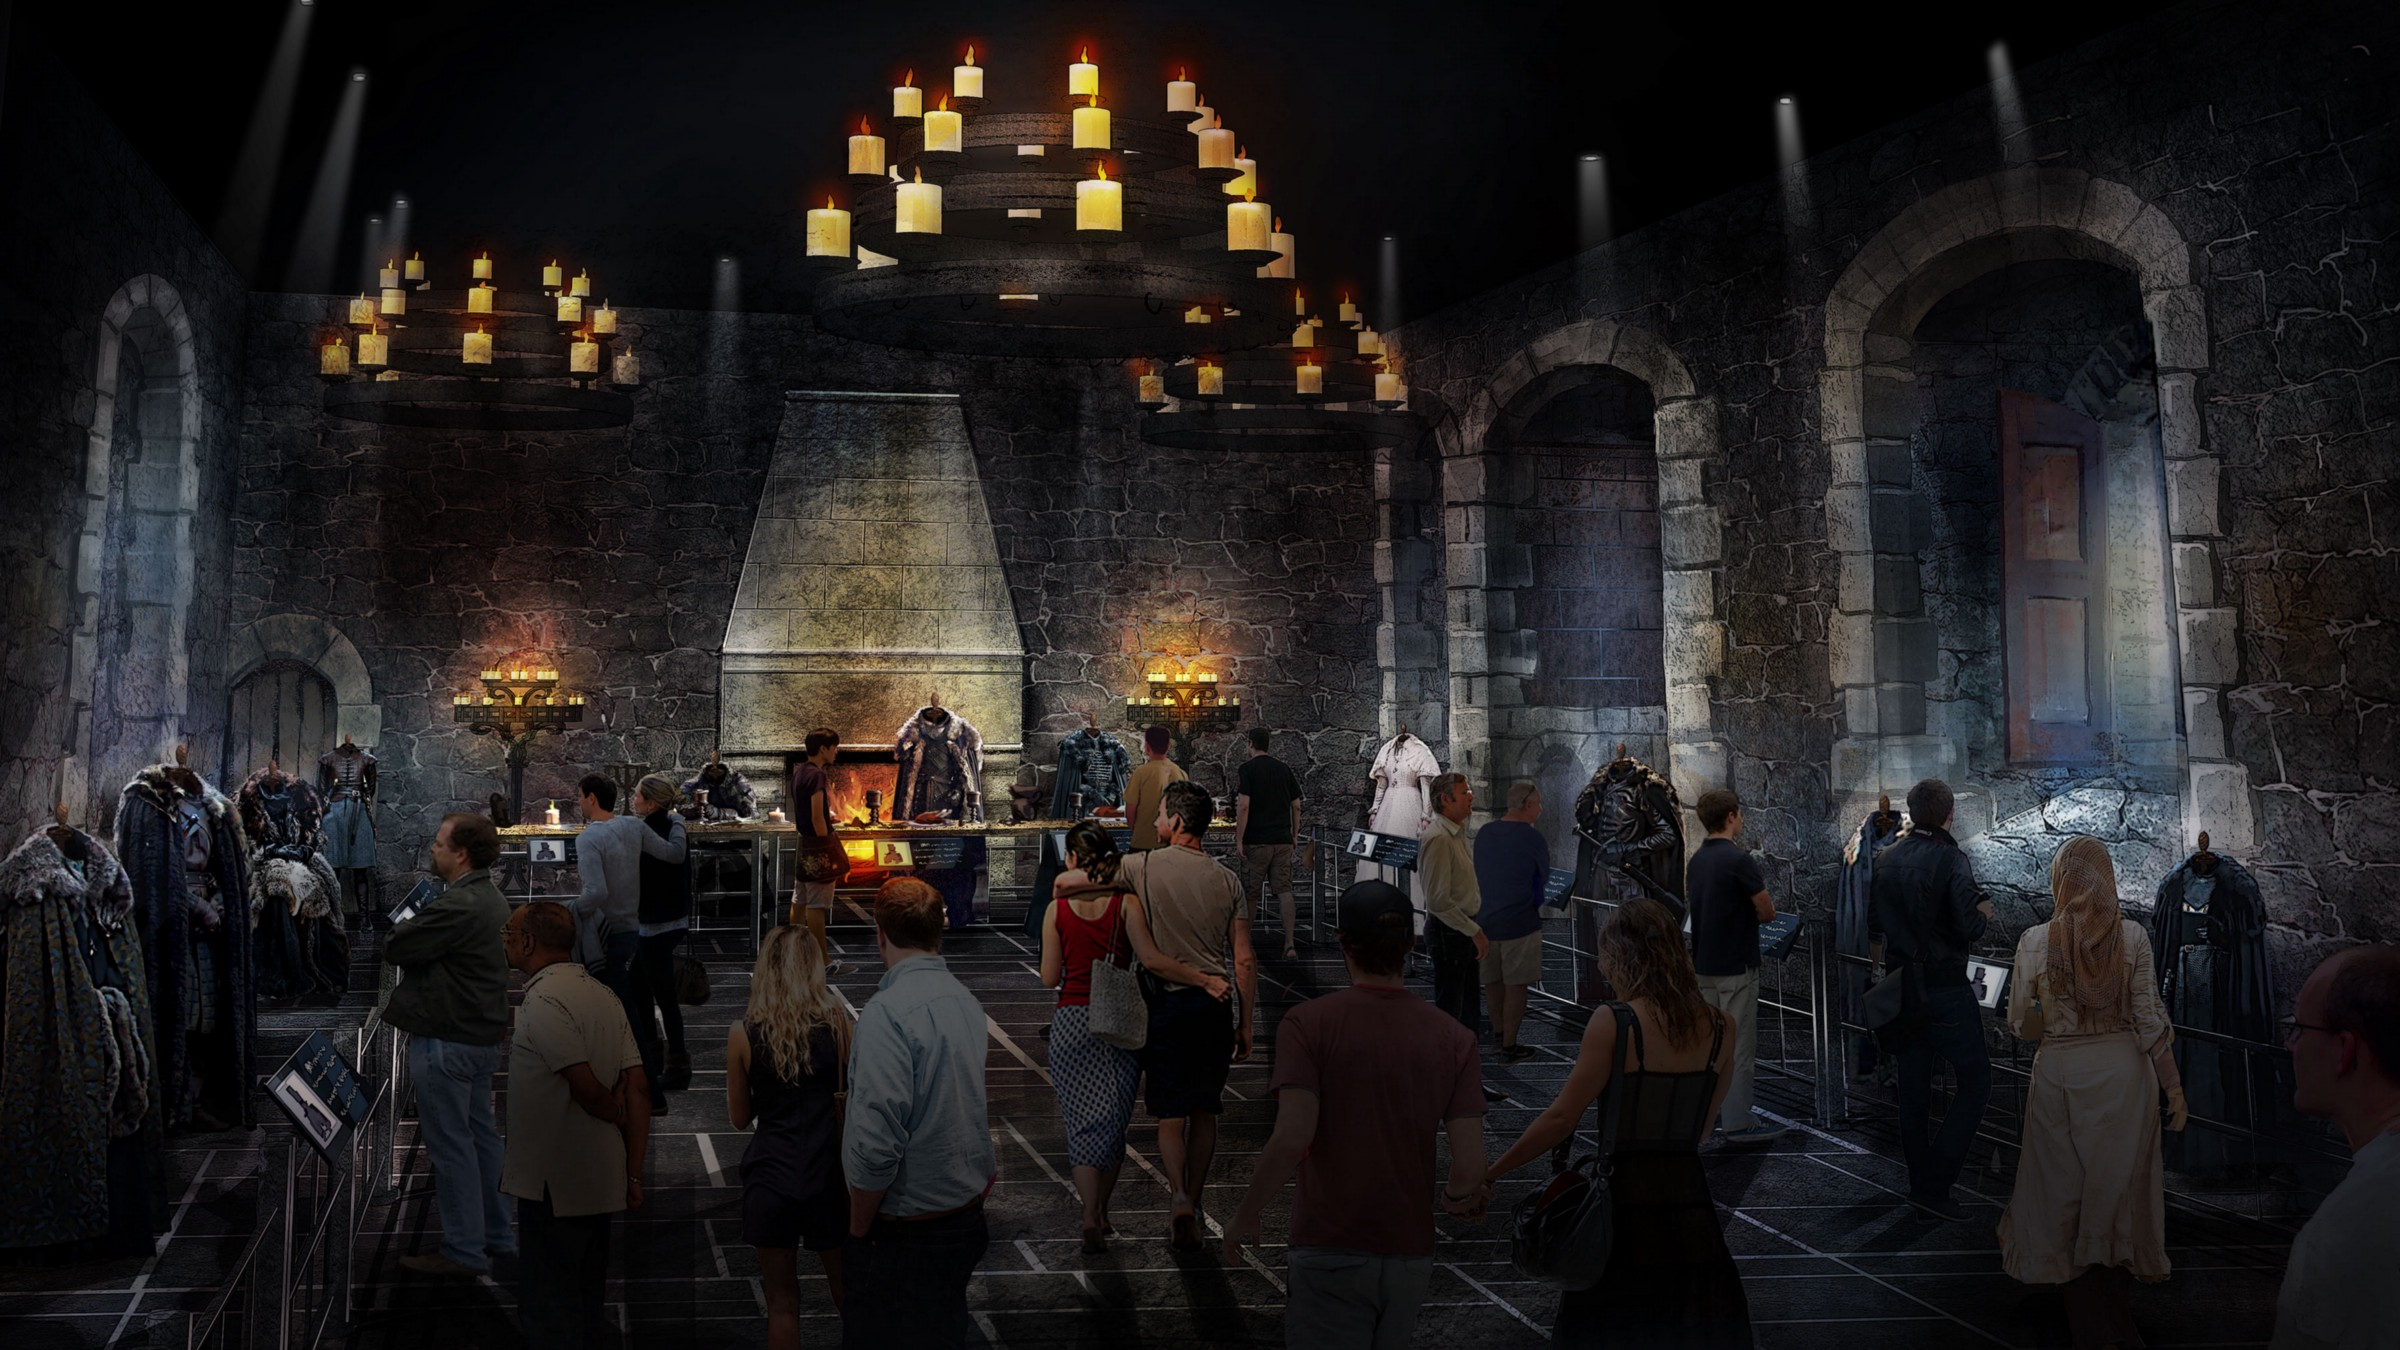 Winterfell, as seen in Game of Thrones. Credit: Home Box Office, Inc.